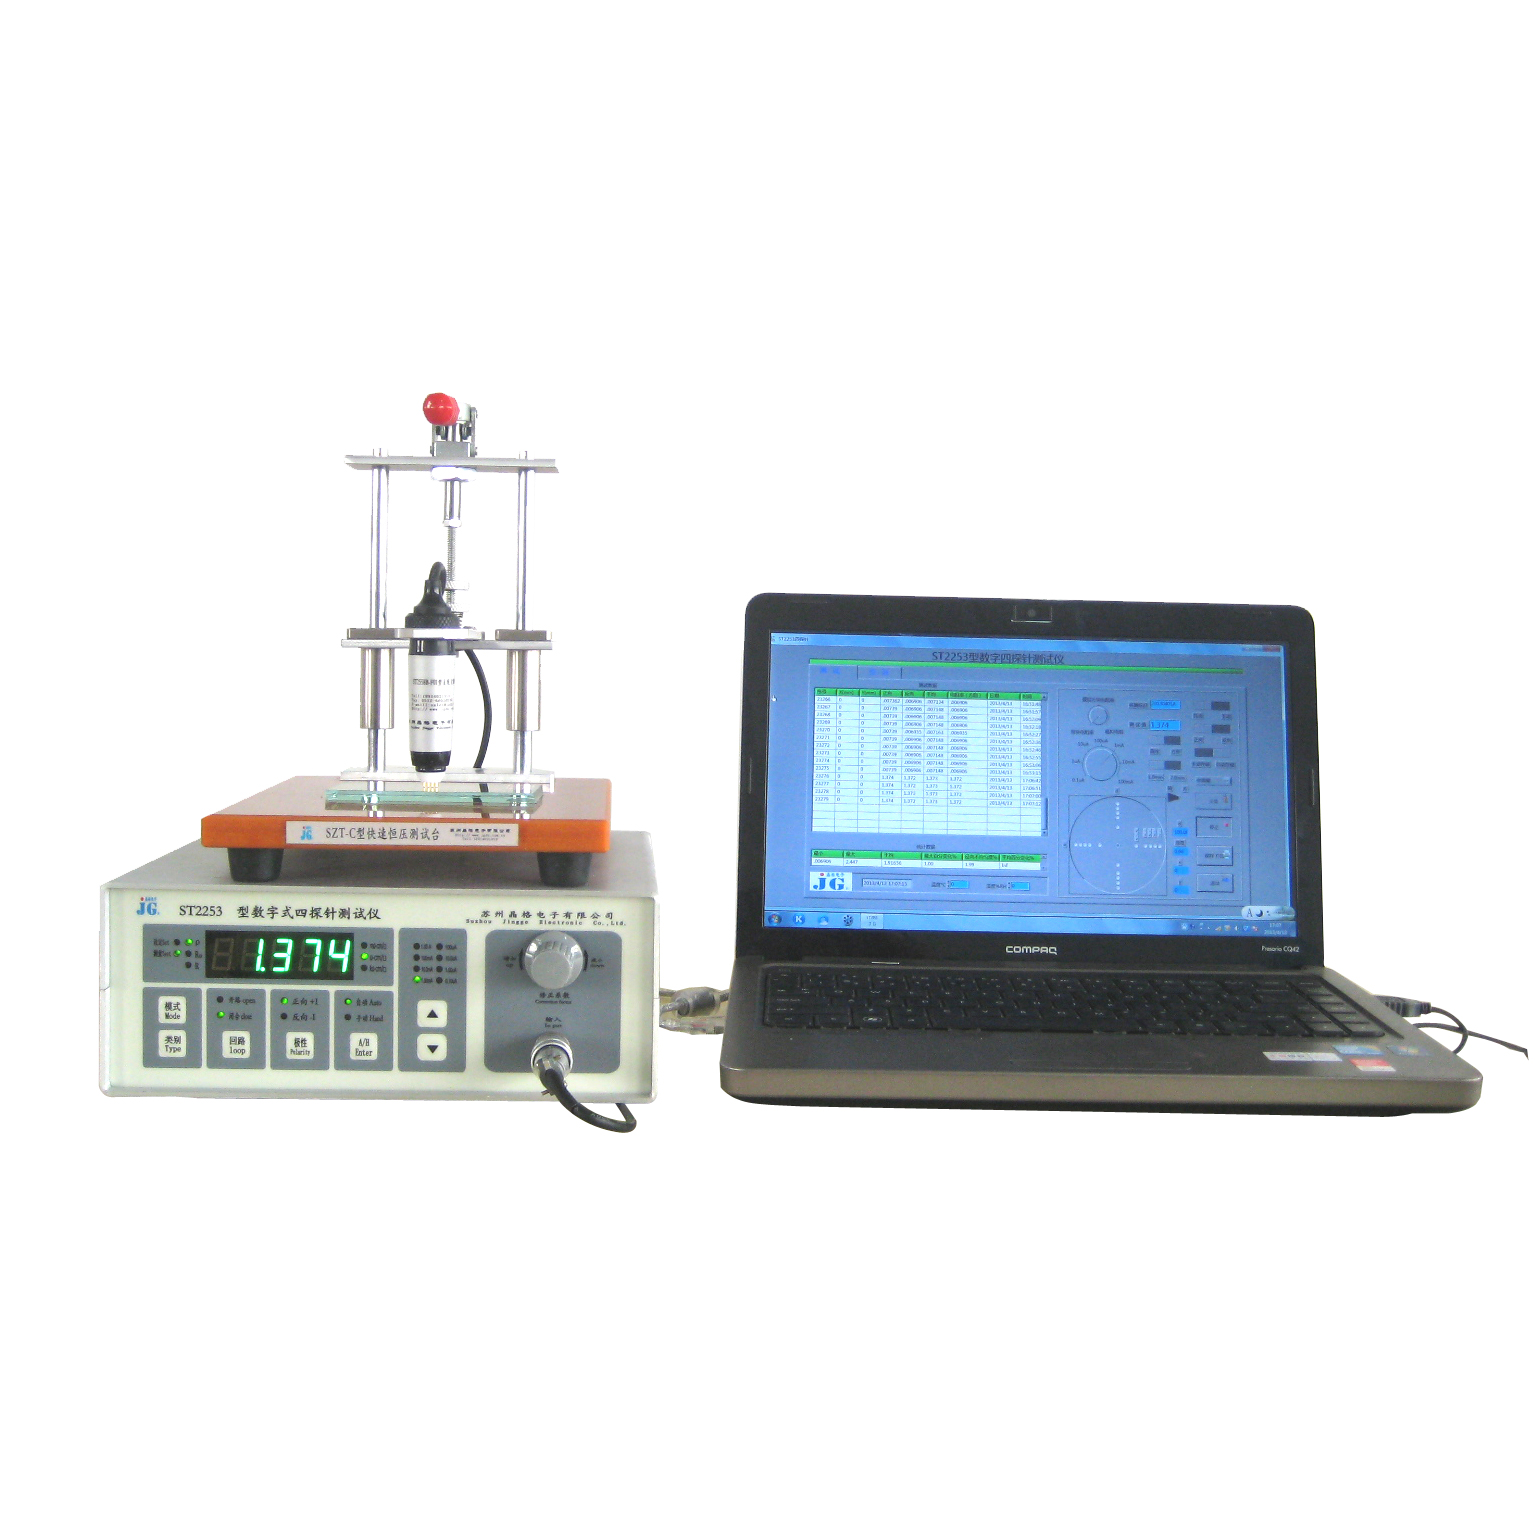 ST2253 digital four probe tester with software